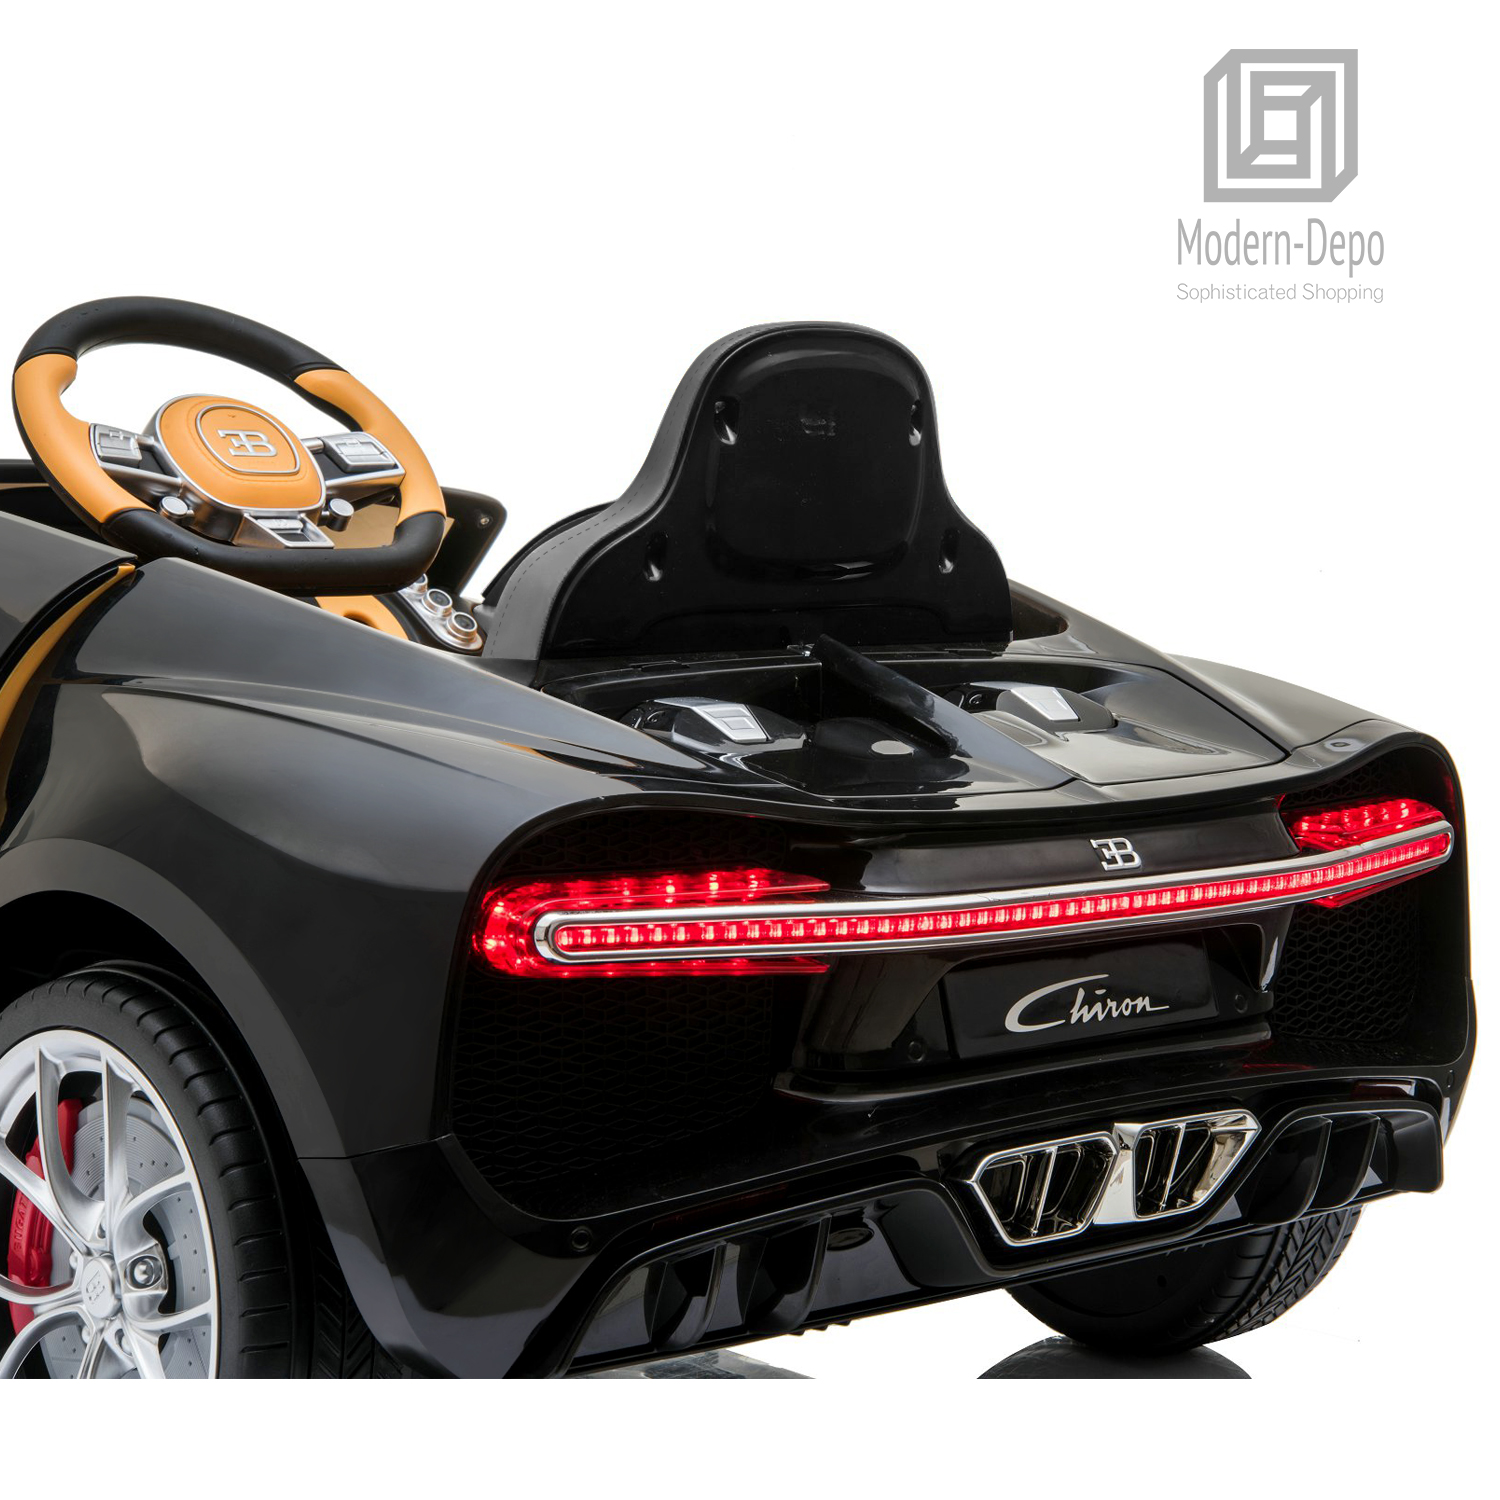 Bugatti-Chiron-12V-Kids-Ride-On-Car-with-Remote-Control-High-Speed-Motor miniature 13